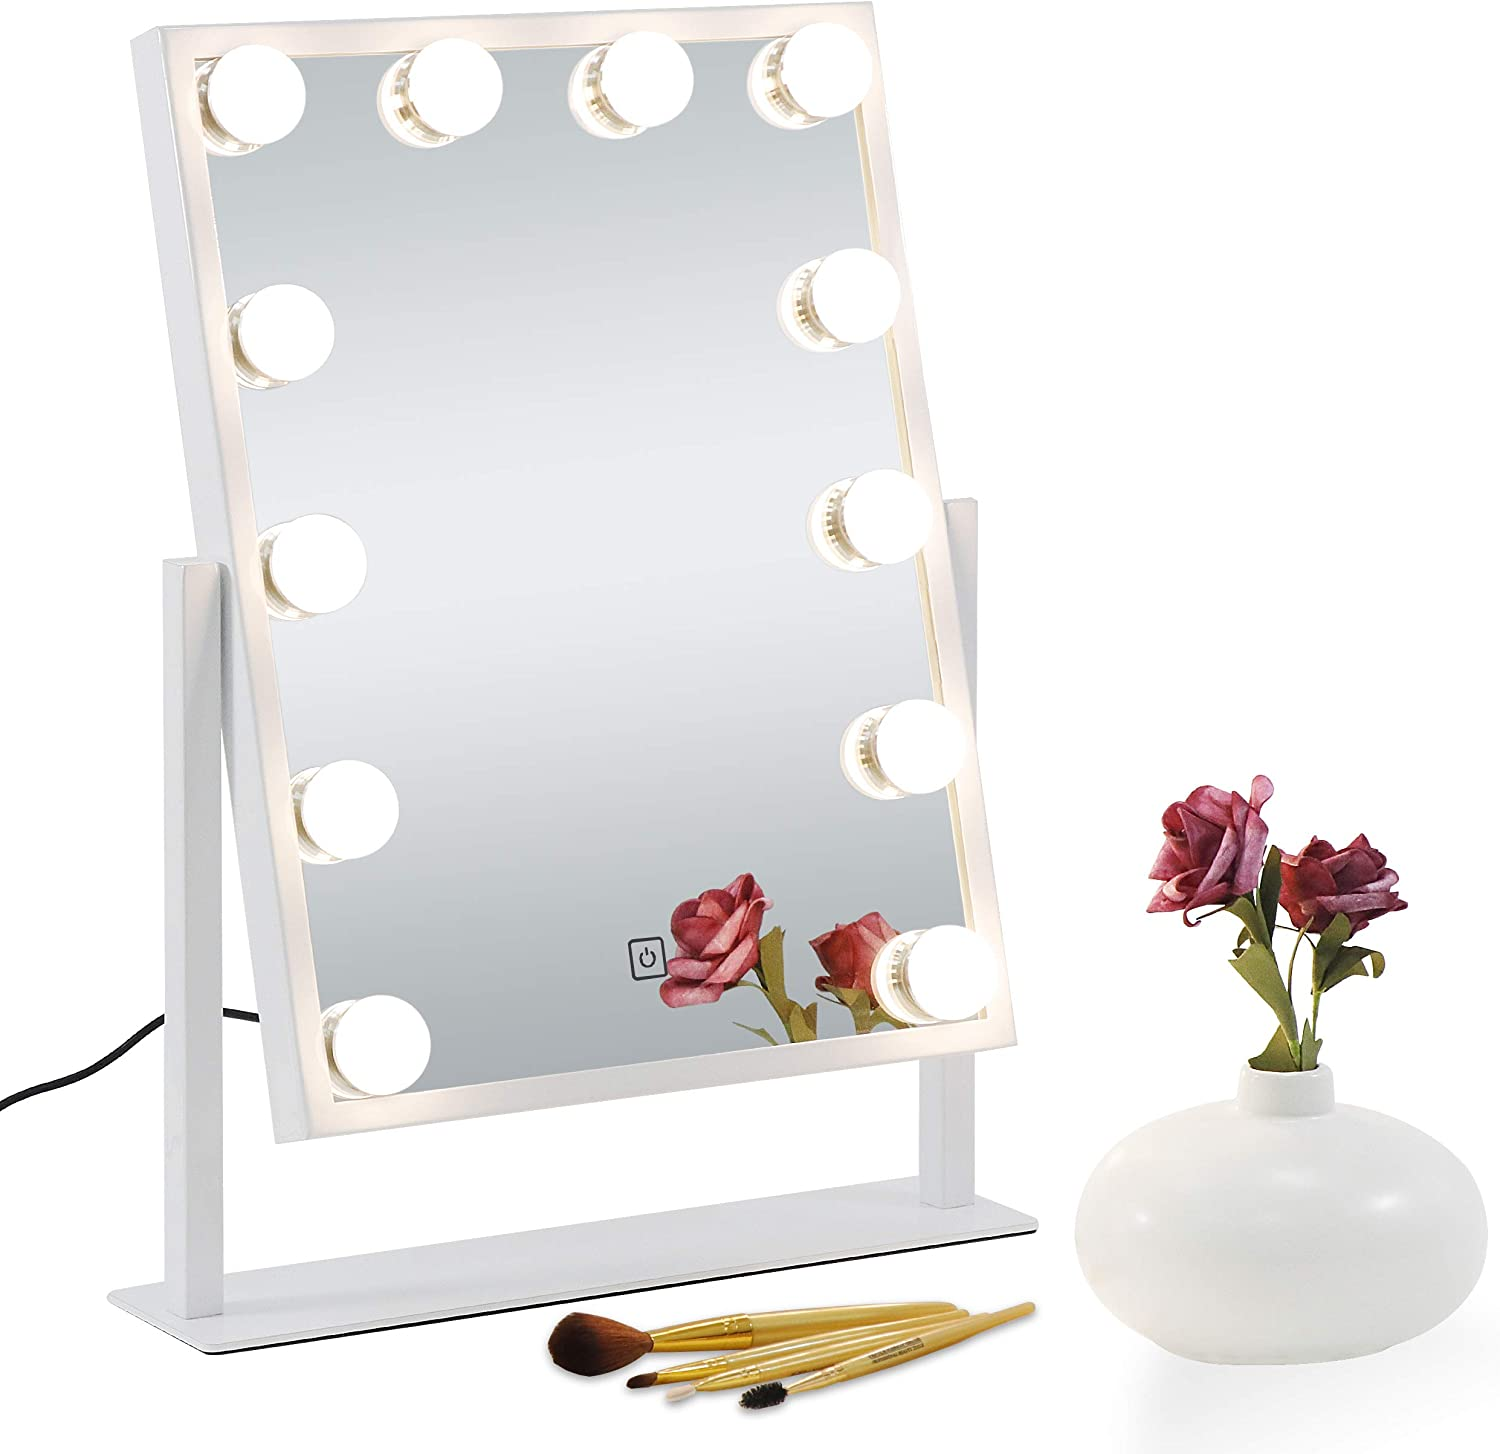 ZENY Lighted Makeup Vanity Mirror with 10X Finally popular brand 12 LEDs Lights Max 75% OFF Ma and